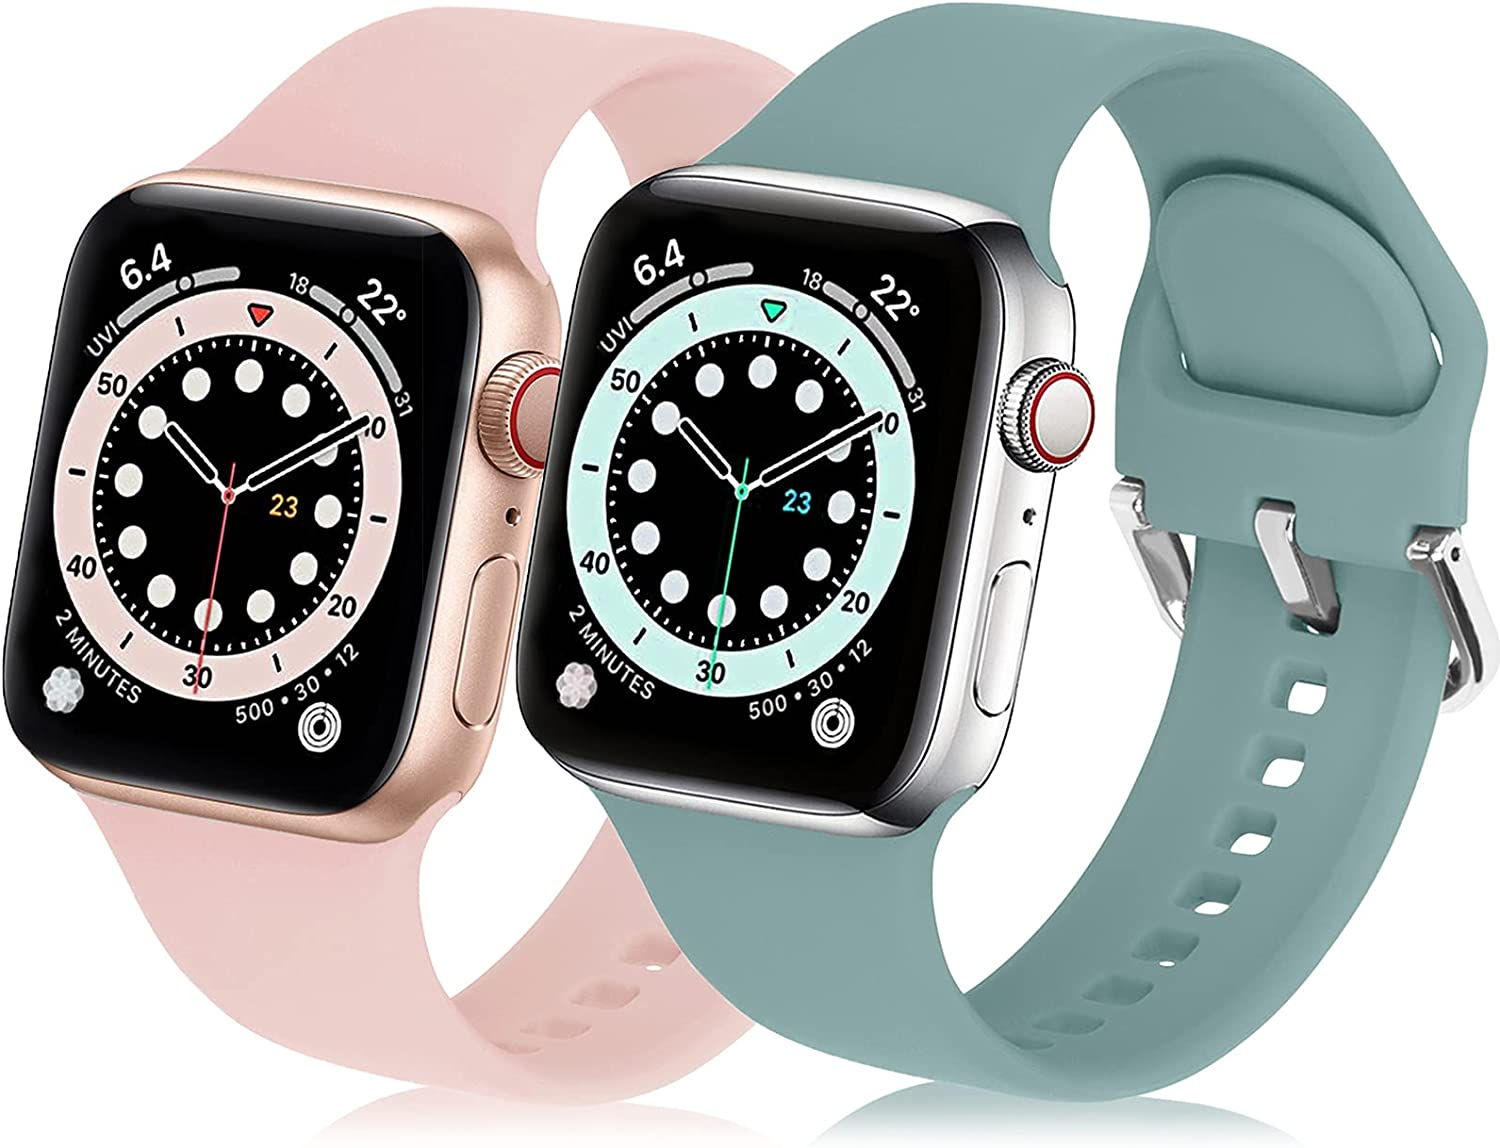 eCamframe Sport Bands Compatible with Apple Watch Band 40mm 38mm, 2 Pack Waterproof Silicone Replacement iWatch bands Men Women Compatible with Series 6 5 4 3 2 1 & SE(PinkSand+Cactus,38/40mm)